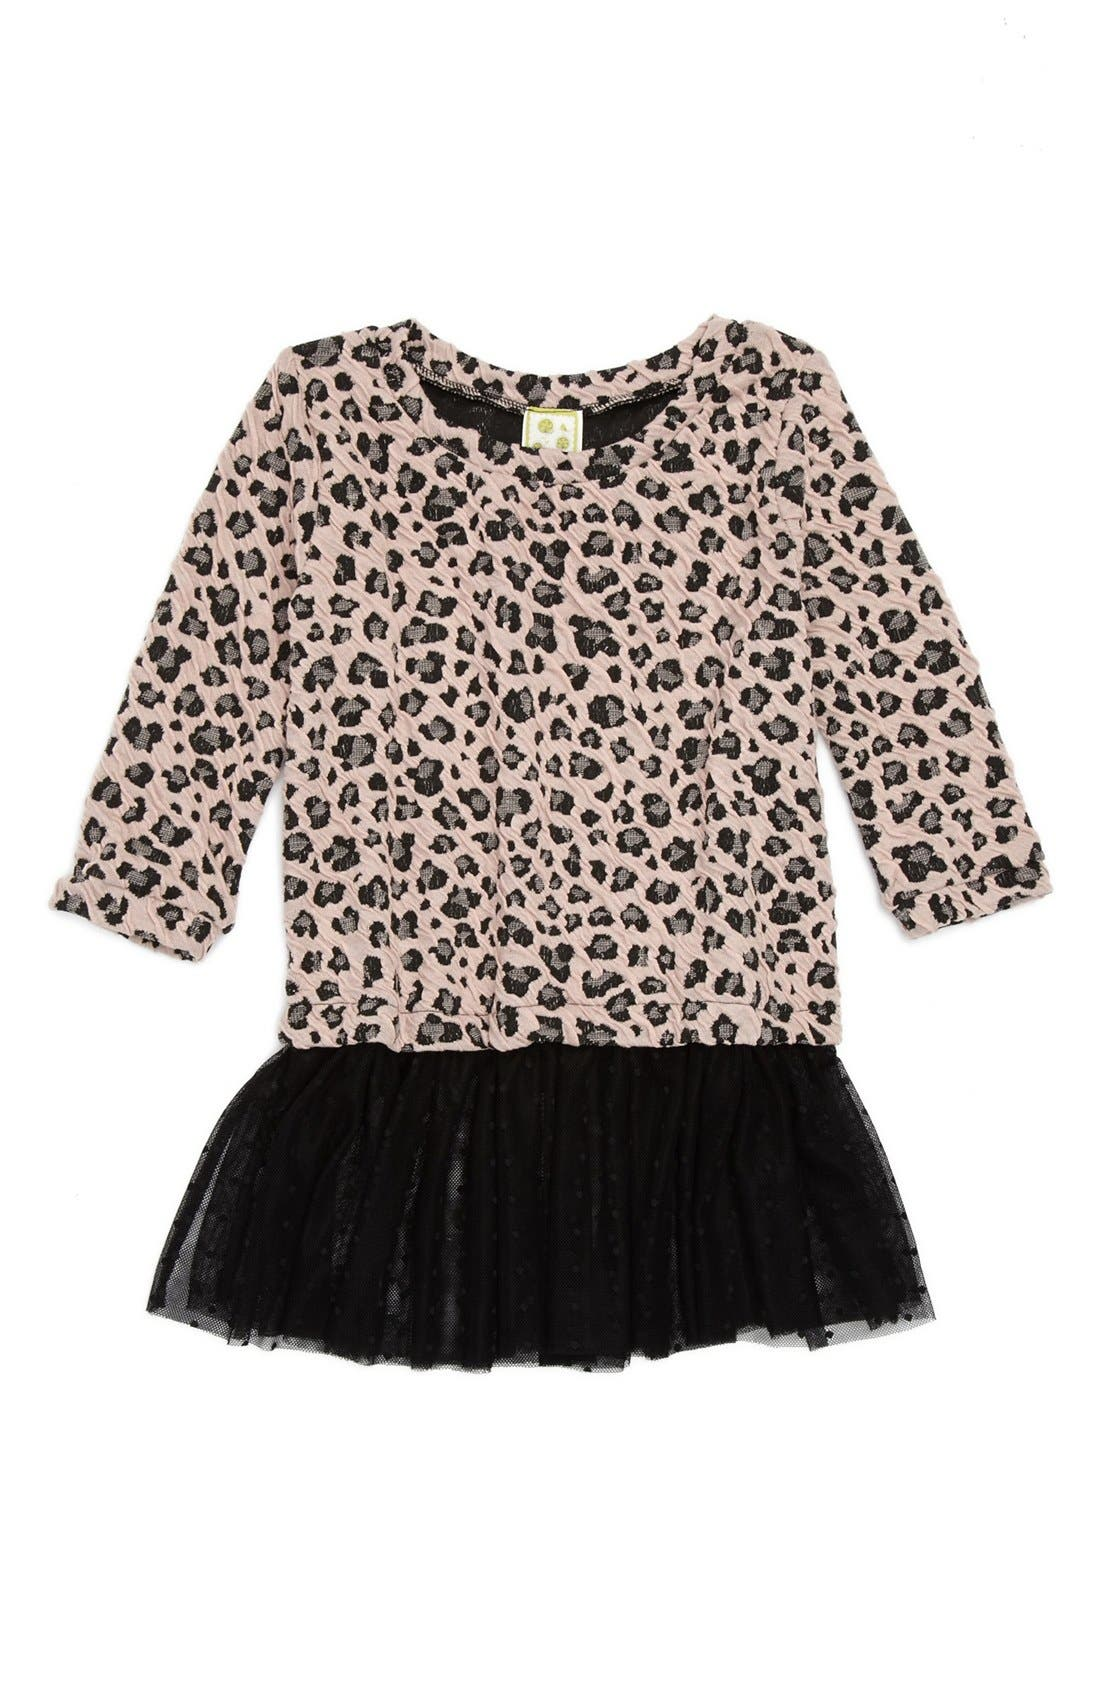 Main Image - Kiddo Ruffle Hem Top (Little Girls)